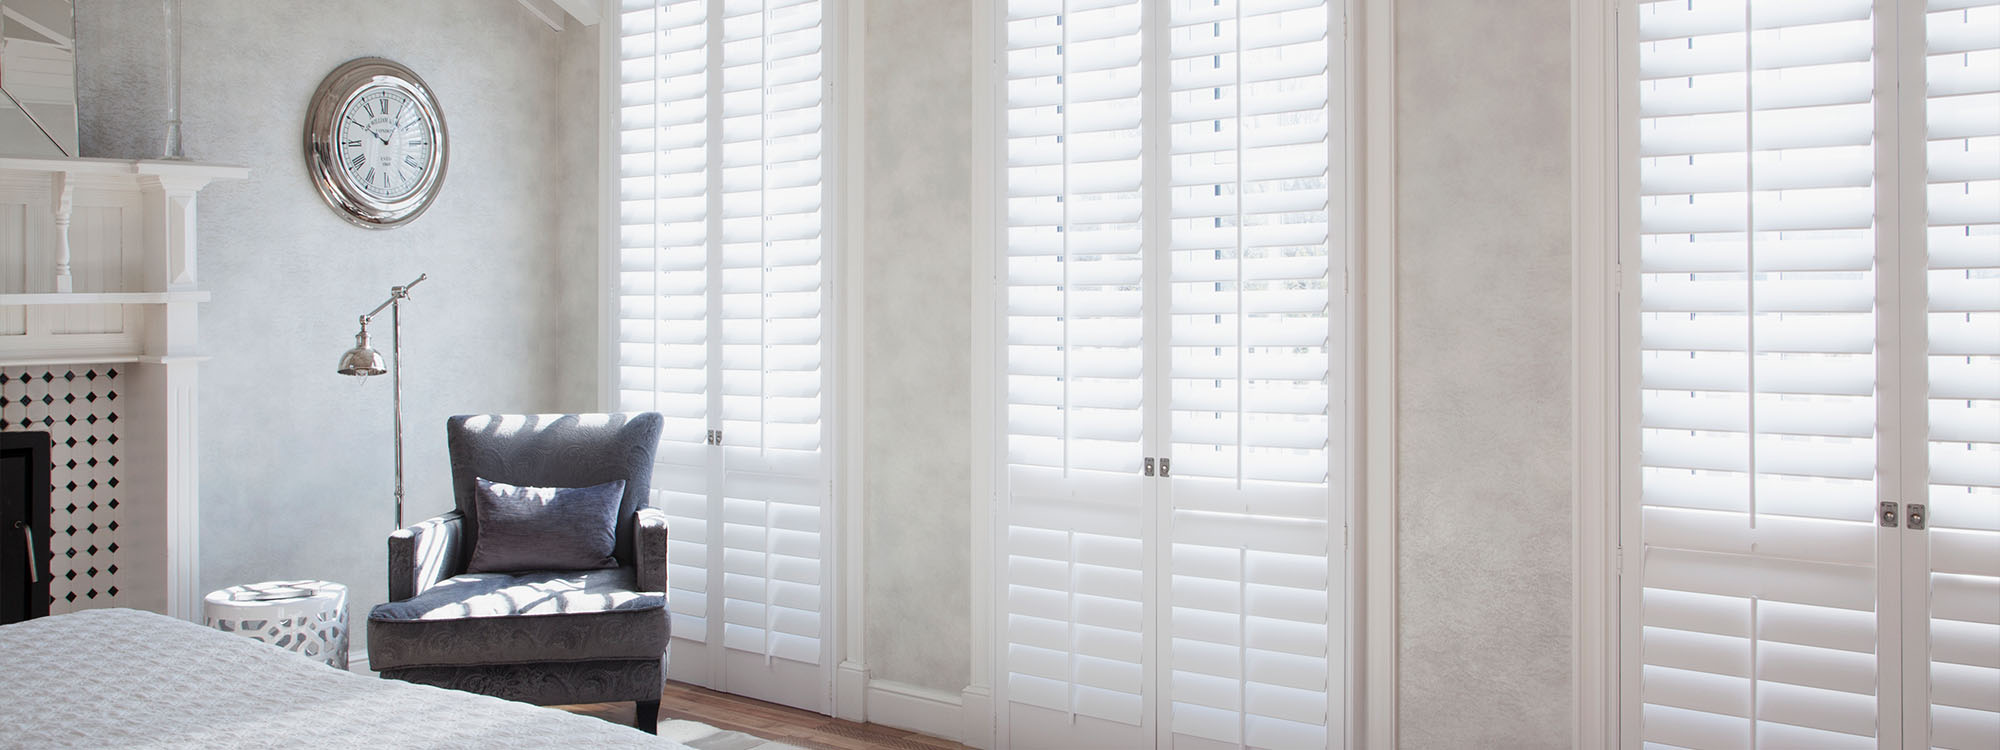 Decowood-shutters-bedroom-pure white